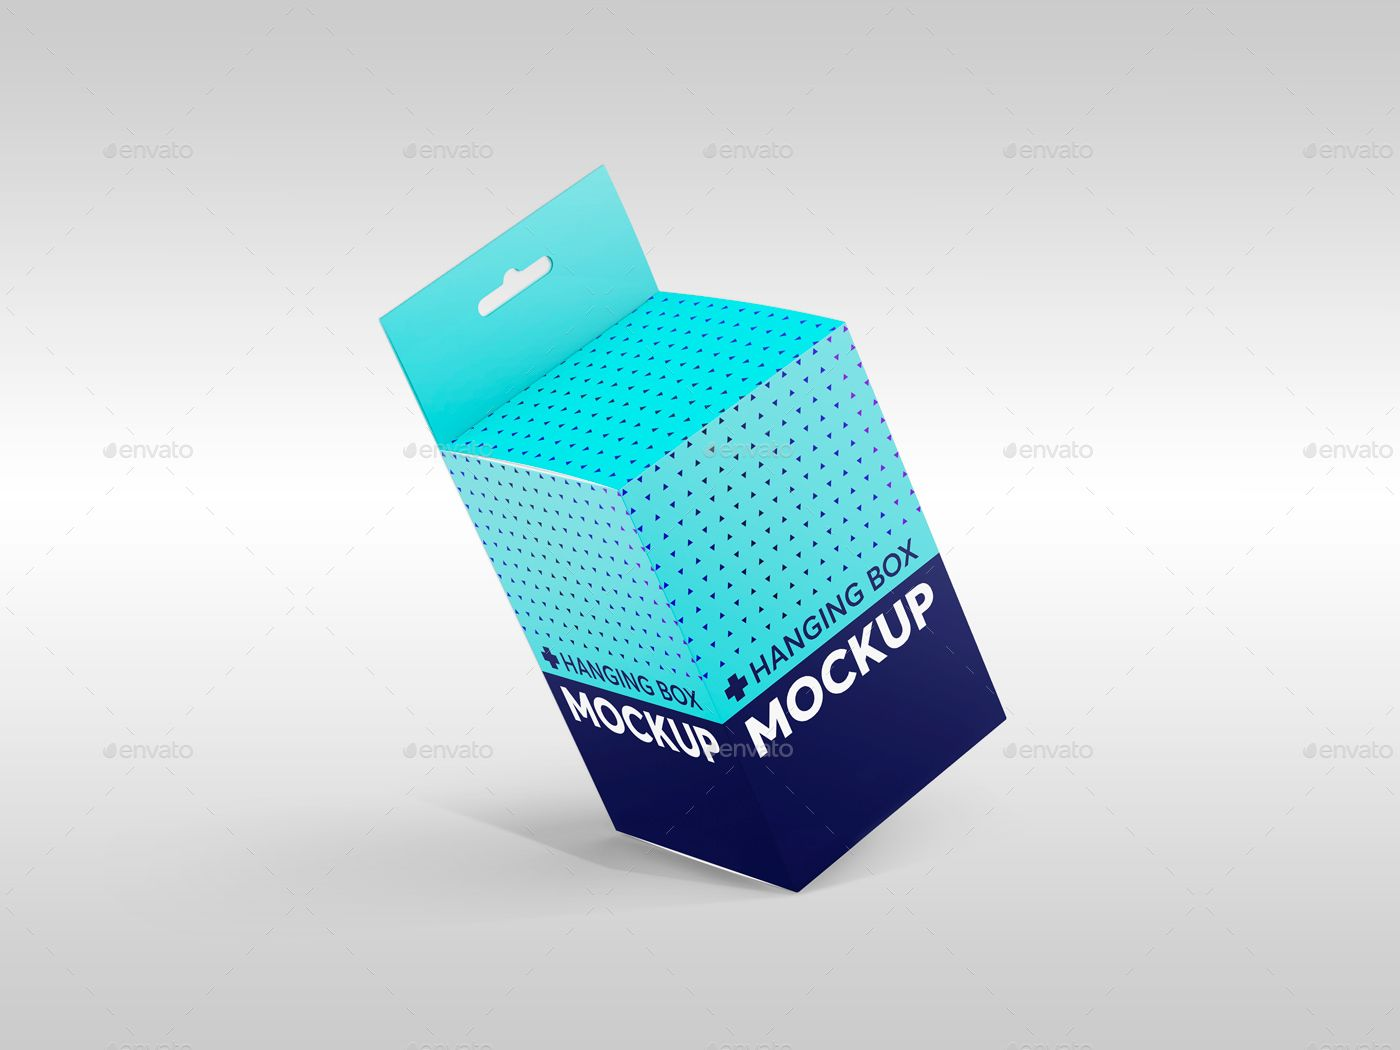 Download Hanging Square Box Mockups V 2 Square Hanging Mockups Box Box Mockup Box Packaging Design Cute Designs To Draw